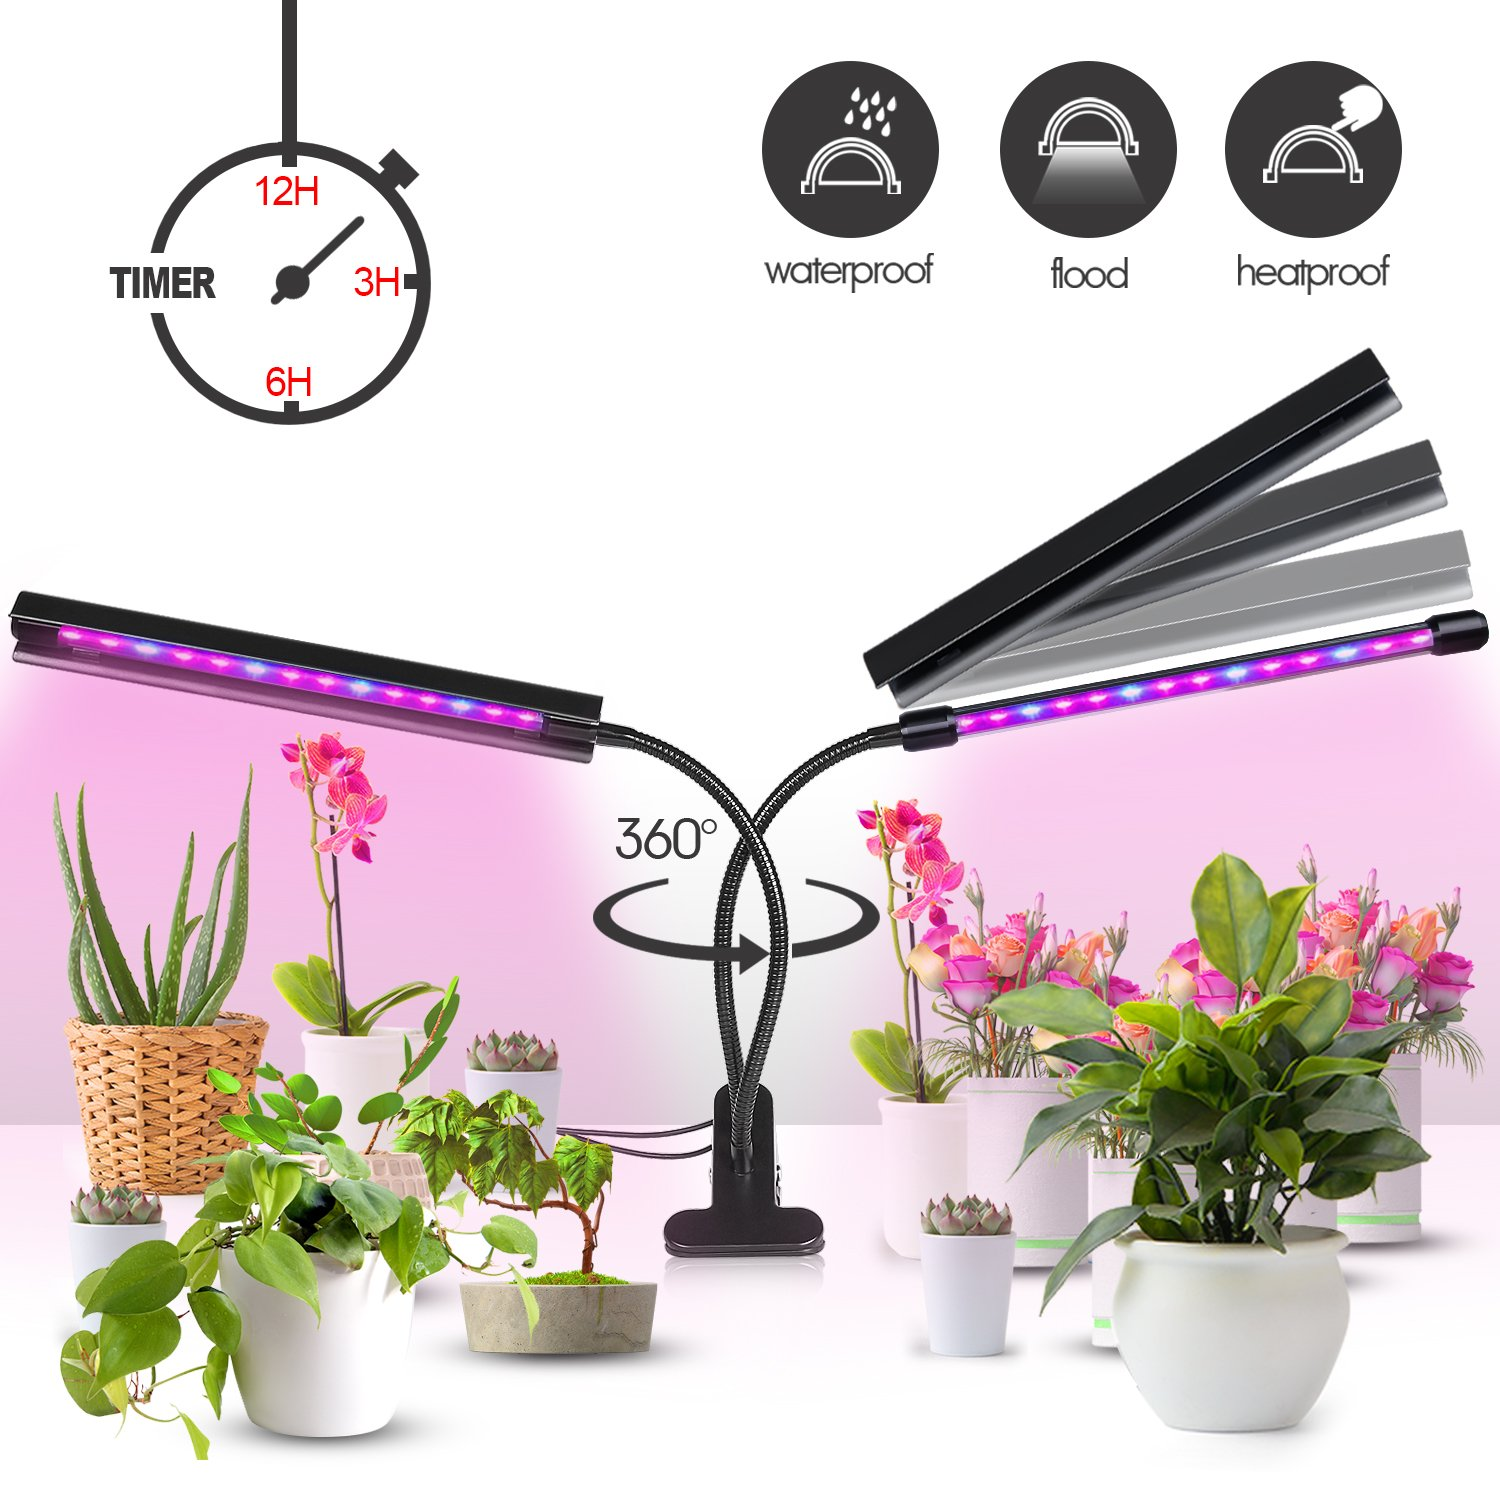 Plant Grow Light [Newest Upgraded - Lamp Cover Design] 20W Dual Head 40 LED 5 Dimmable Levels Grow Lights for Indoor Plant with 3/6/12H Automatic Cycle Timer, Red/Blue Spectrum, Adjustable Gooseneck TWOYOUI F700 Plant Grow Light